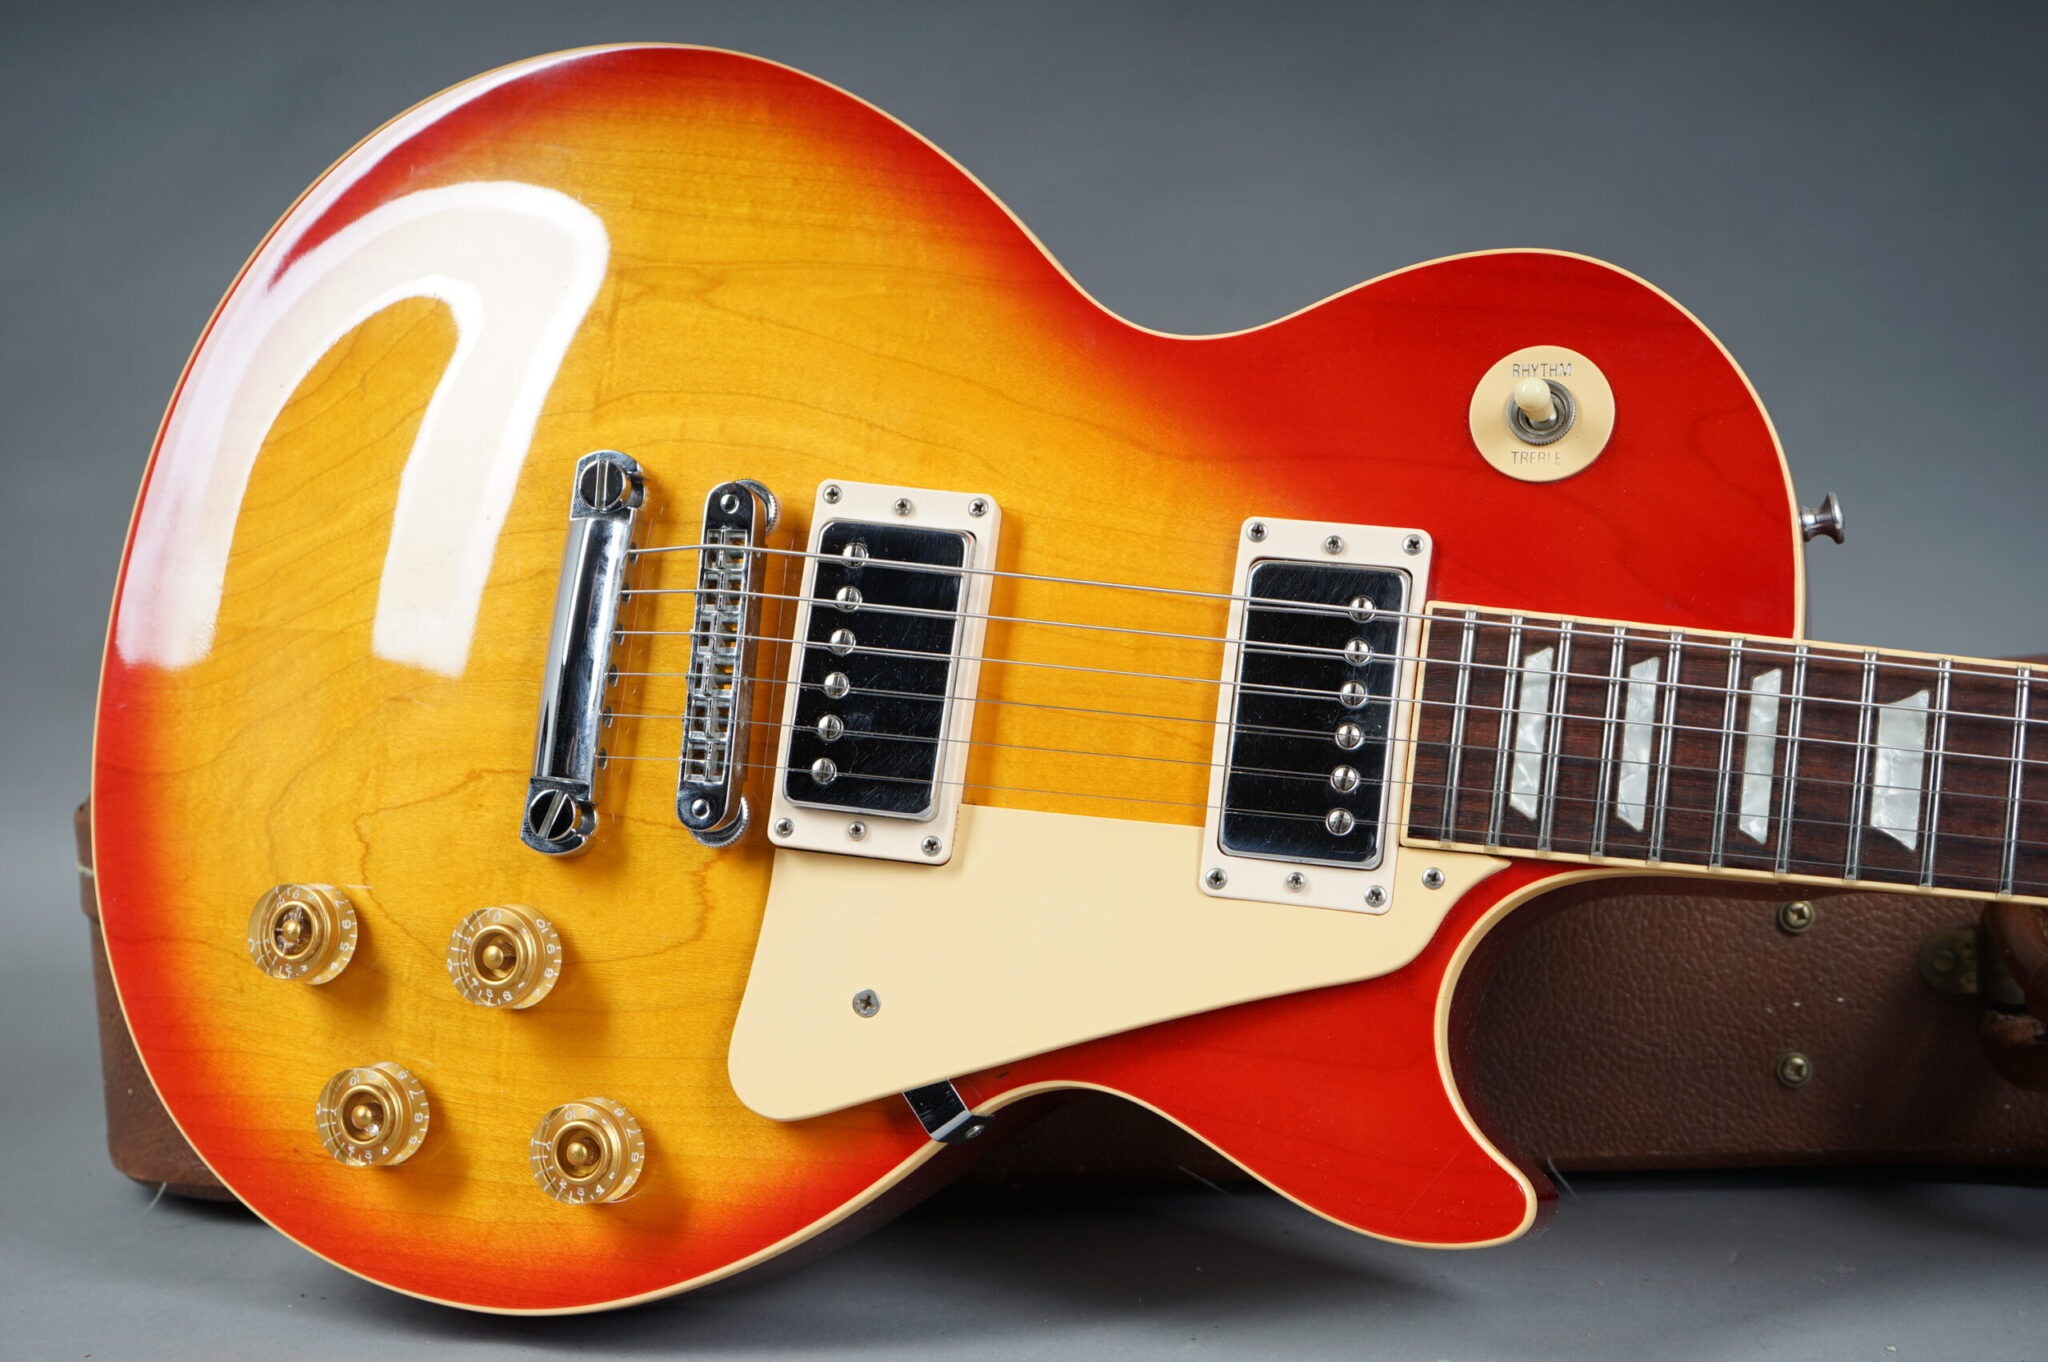 https://guitarpoint.de/app/uploads/products/1992-gibson-les-paul-standard-serial-9210435/1992-Gibson-Les-Paul-Standard-9210435-9-scaled-2048x1362.jpg